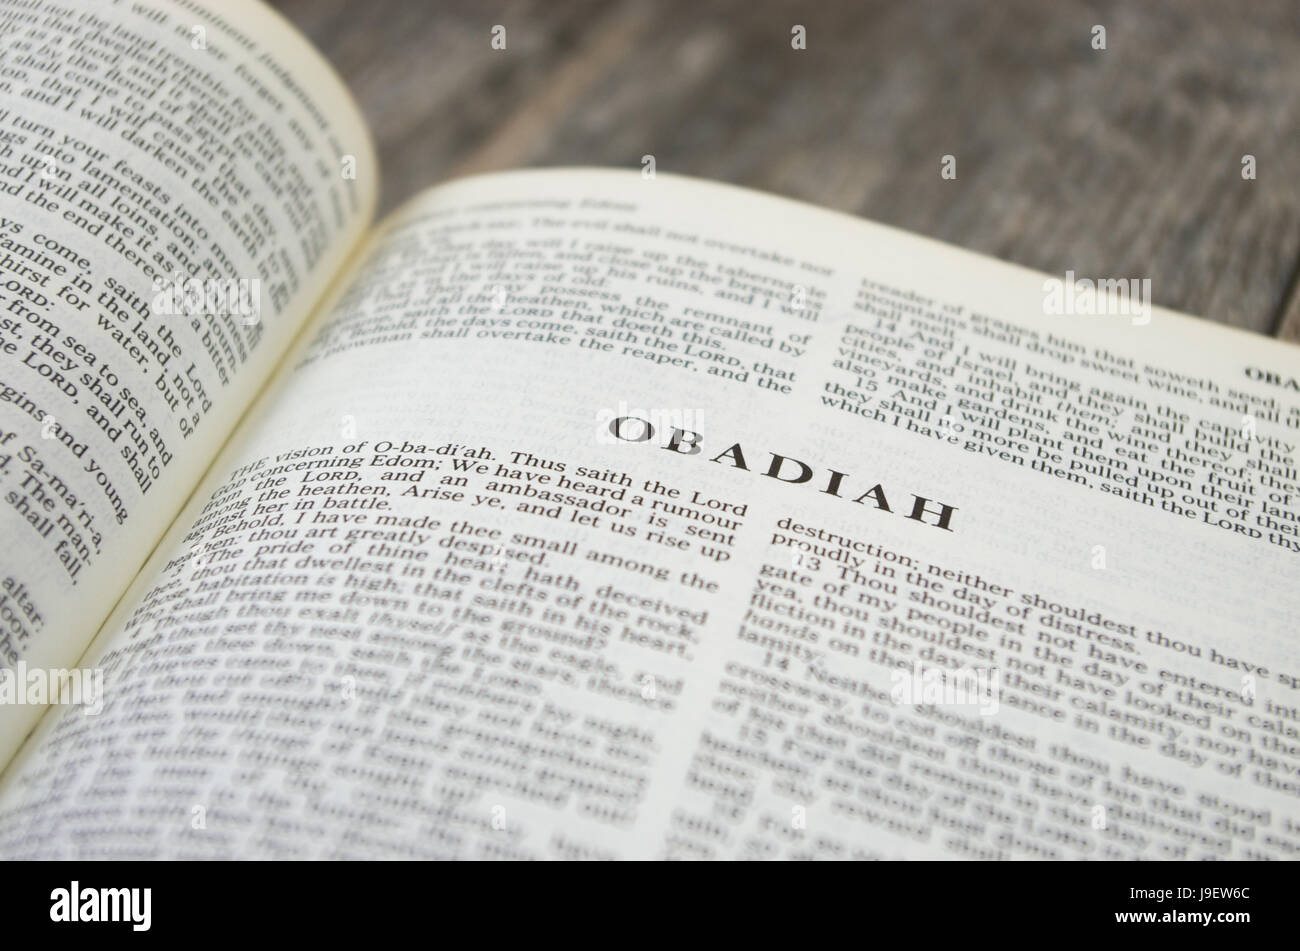 Title page for the book of Obadiah in the Bible – King James Version - Stock Image